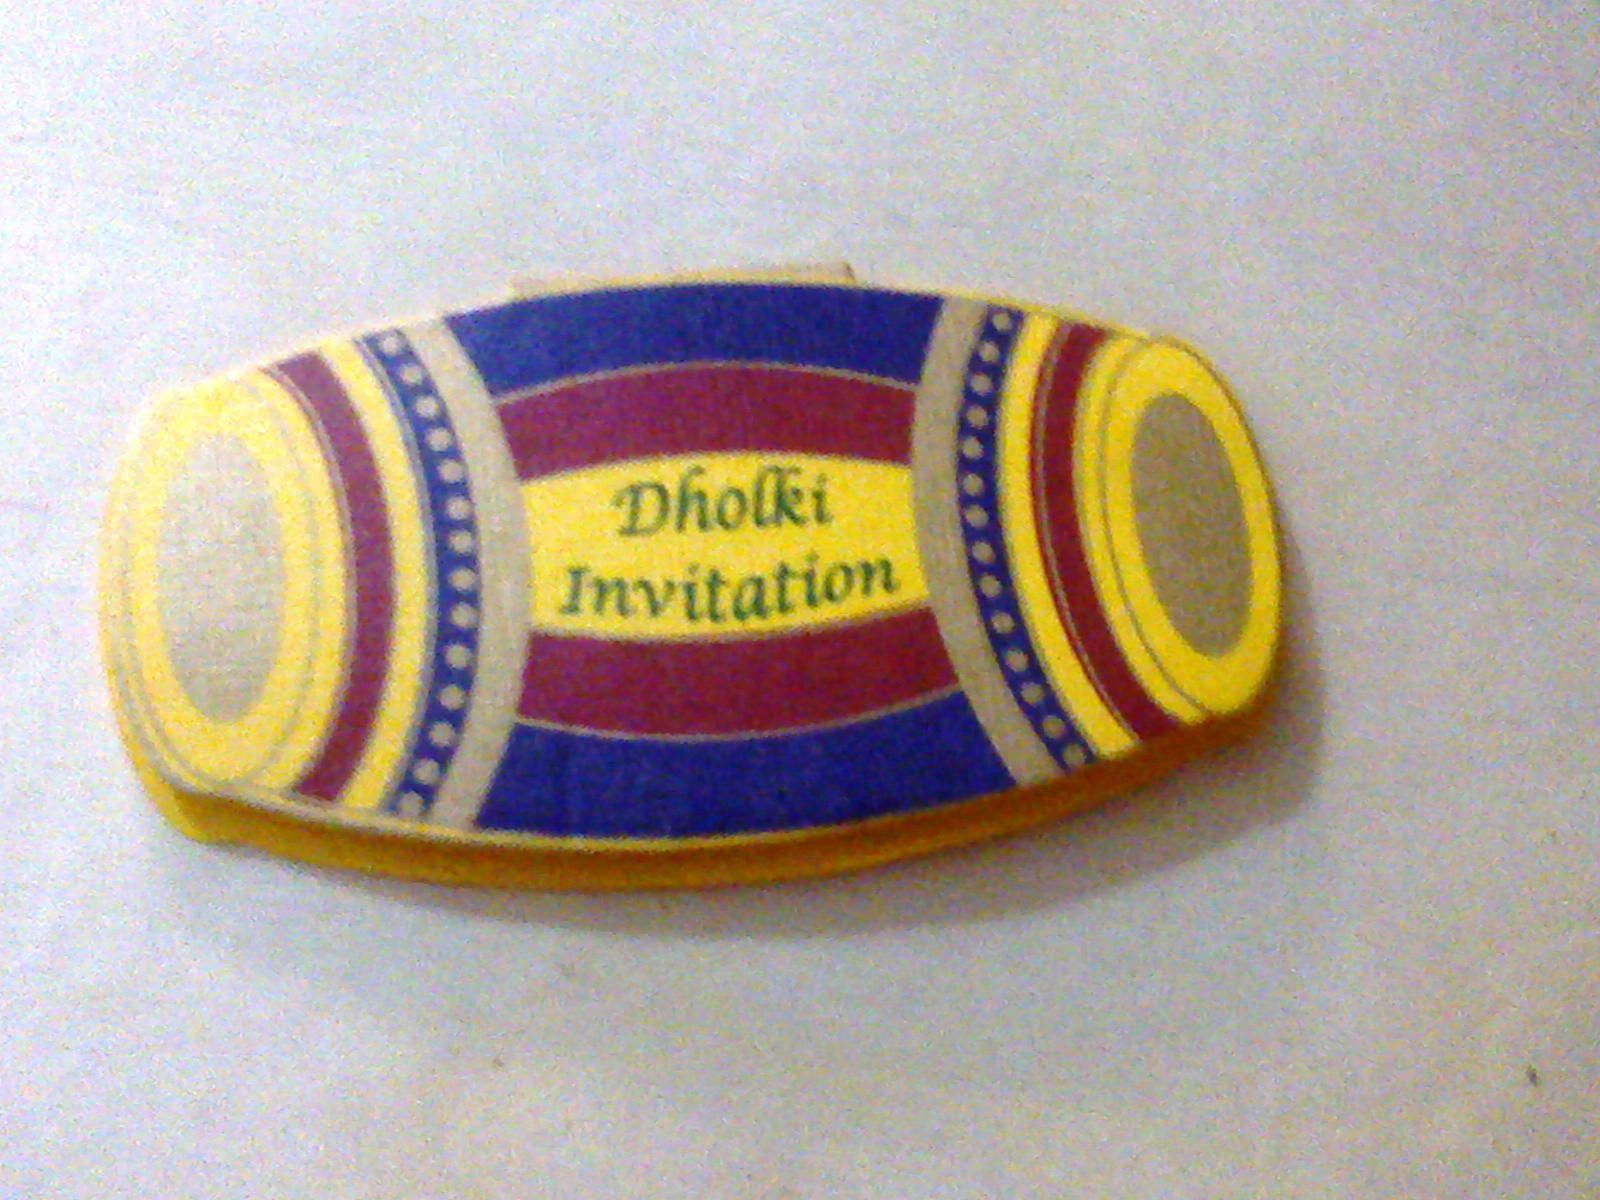 Image Result For Invites For A Dholki Invitations